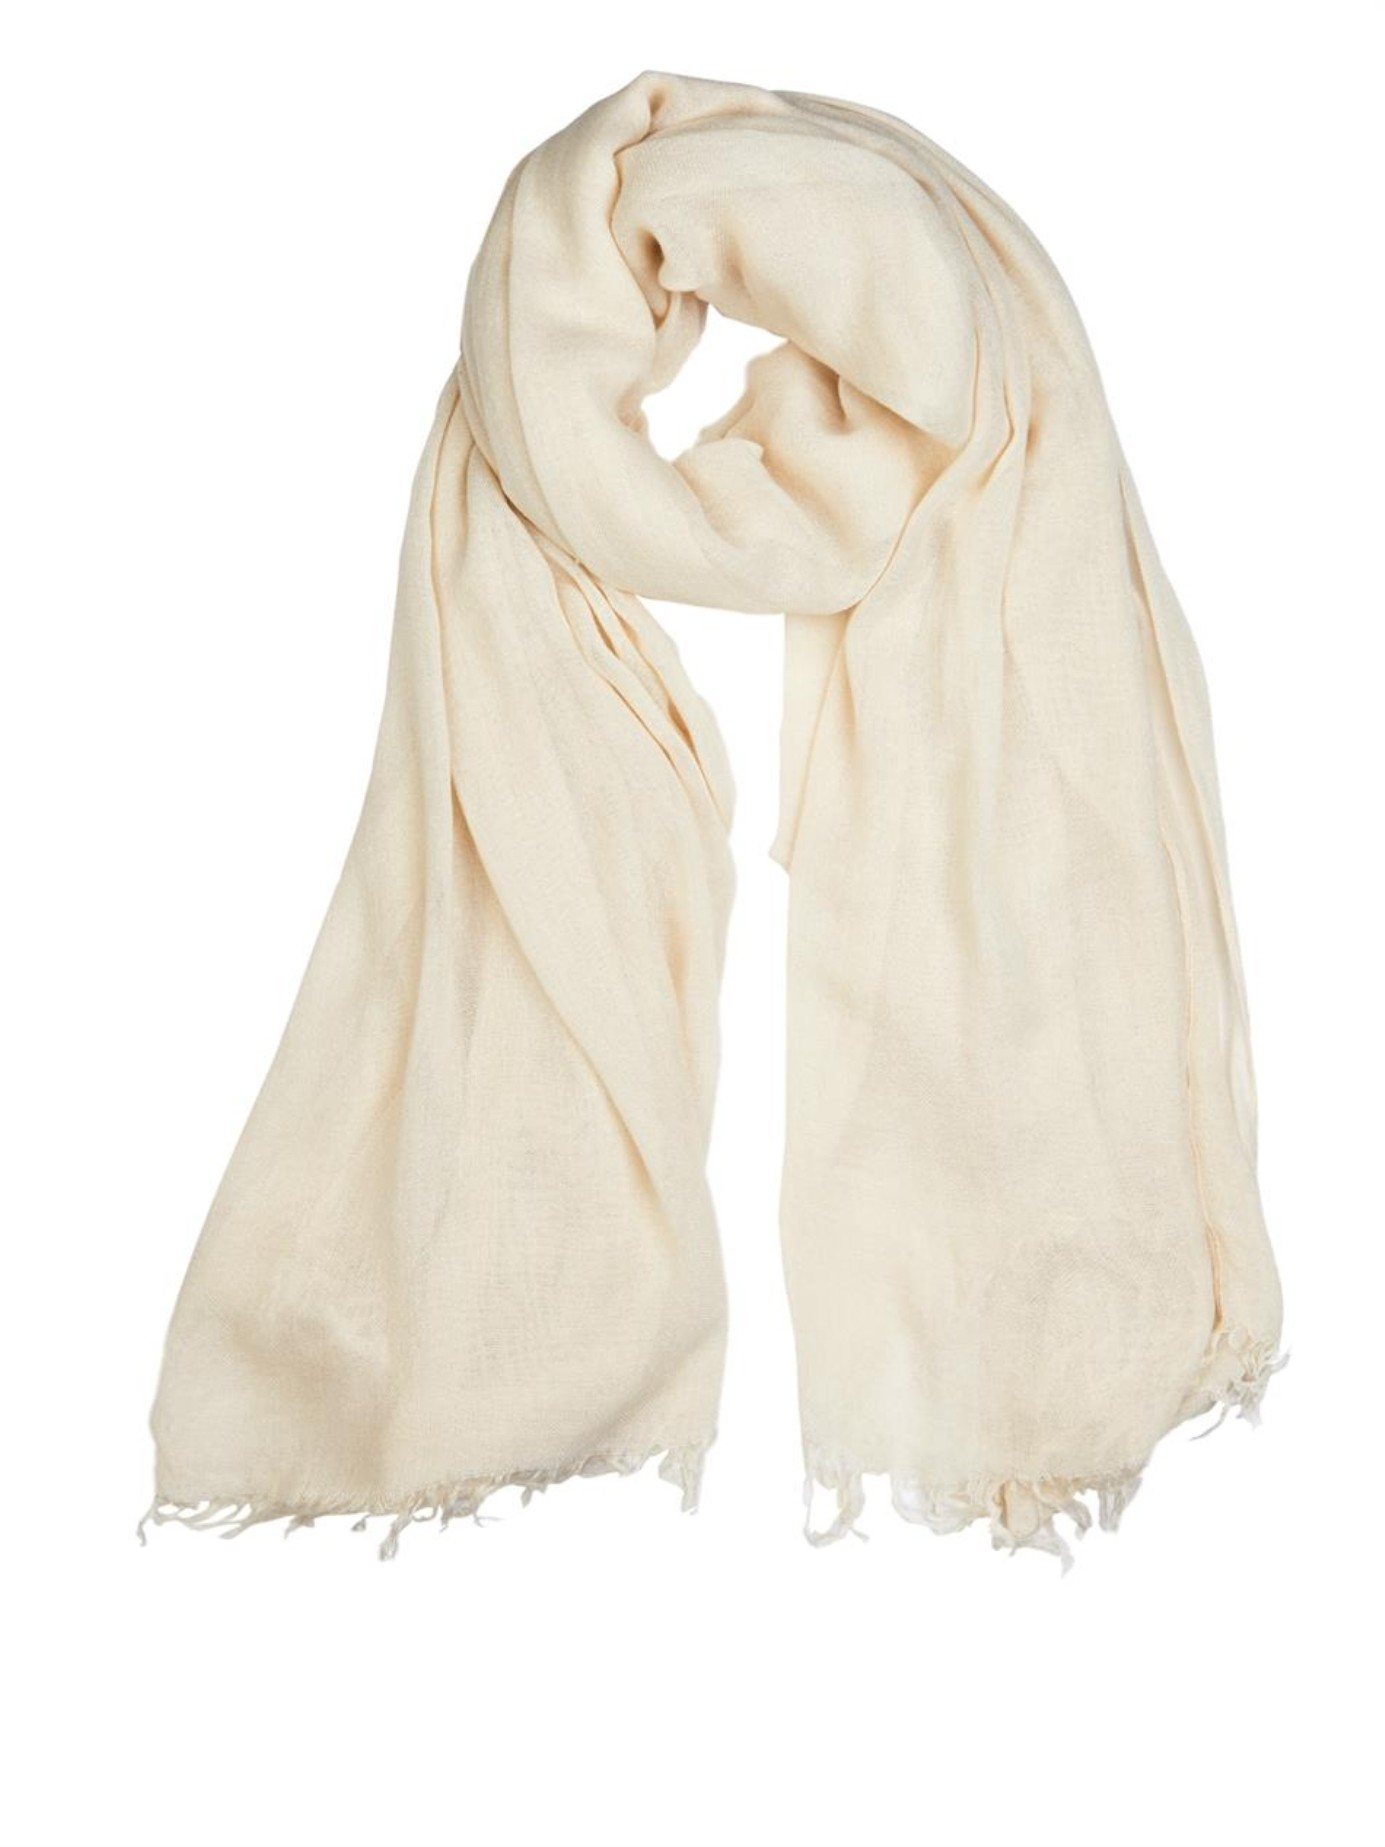 201 Toile Isabel Marant Curt Scarf In Natural Lyst